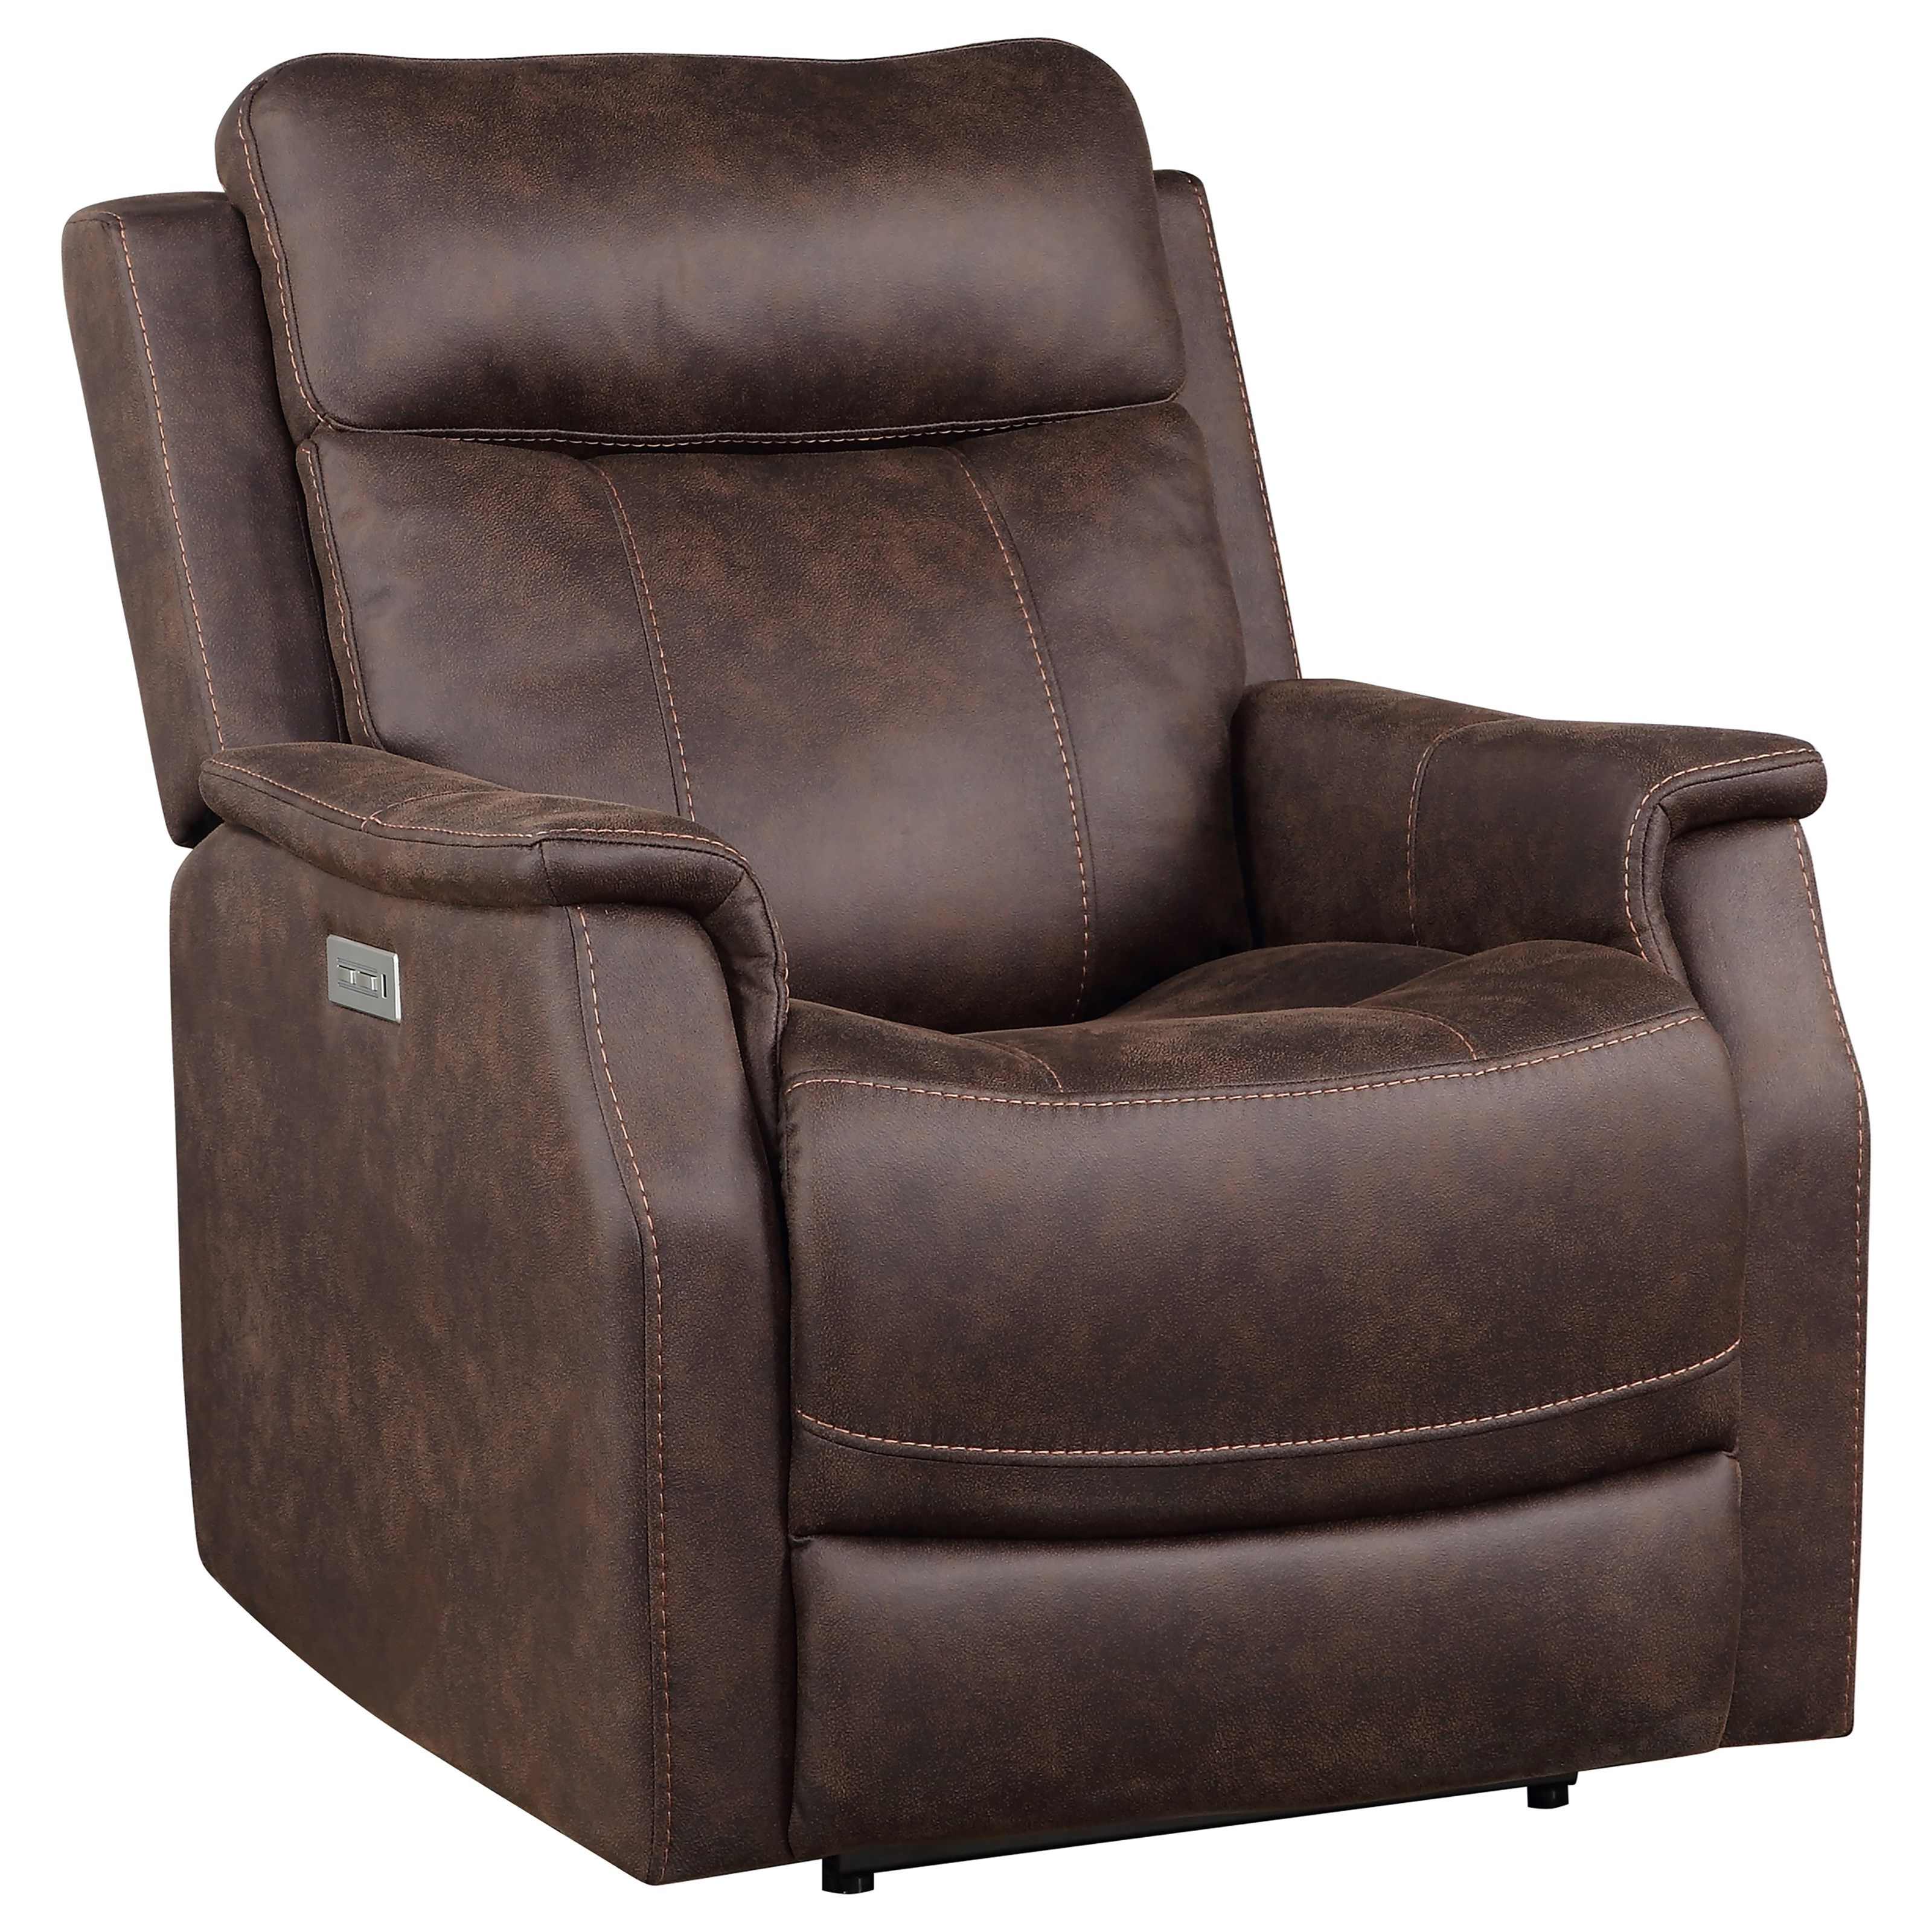 Valencia Power Recliner by Steve Silver at Northeast Factory Direct